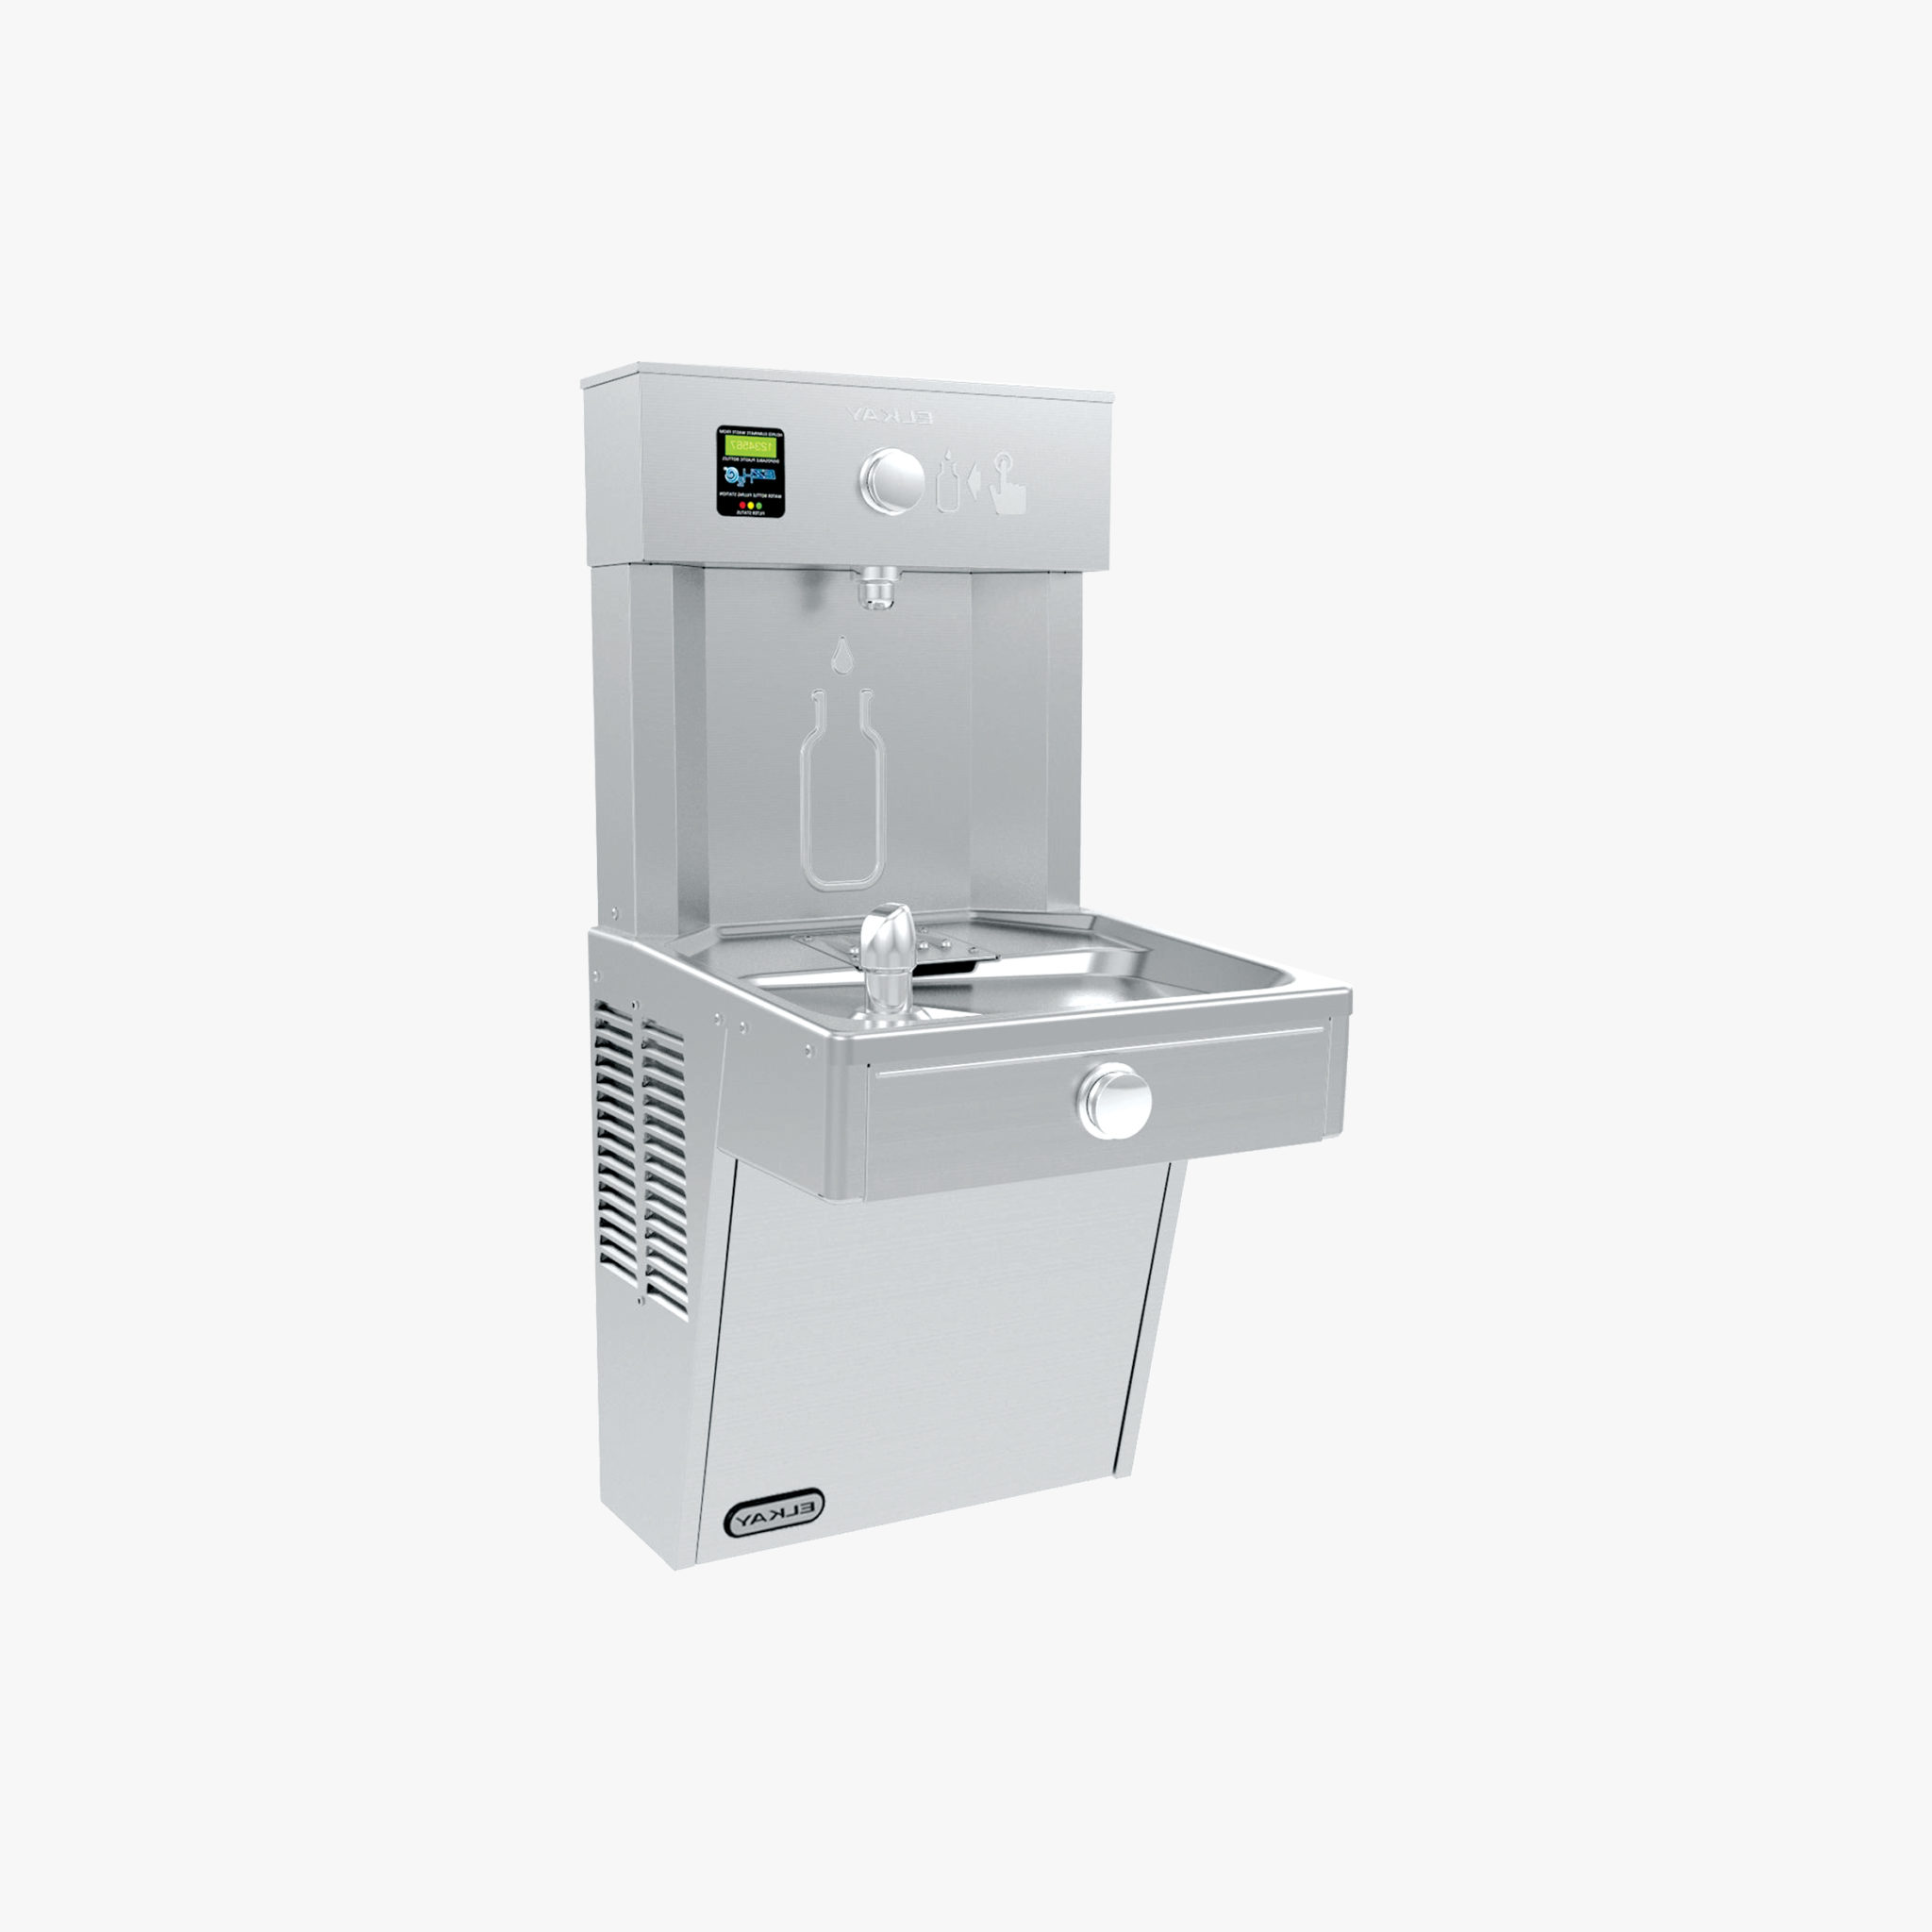 Elkay EZH20 Vandal-resistant Wall-mounted Drinking Fountain and Bottle Refill Station